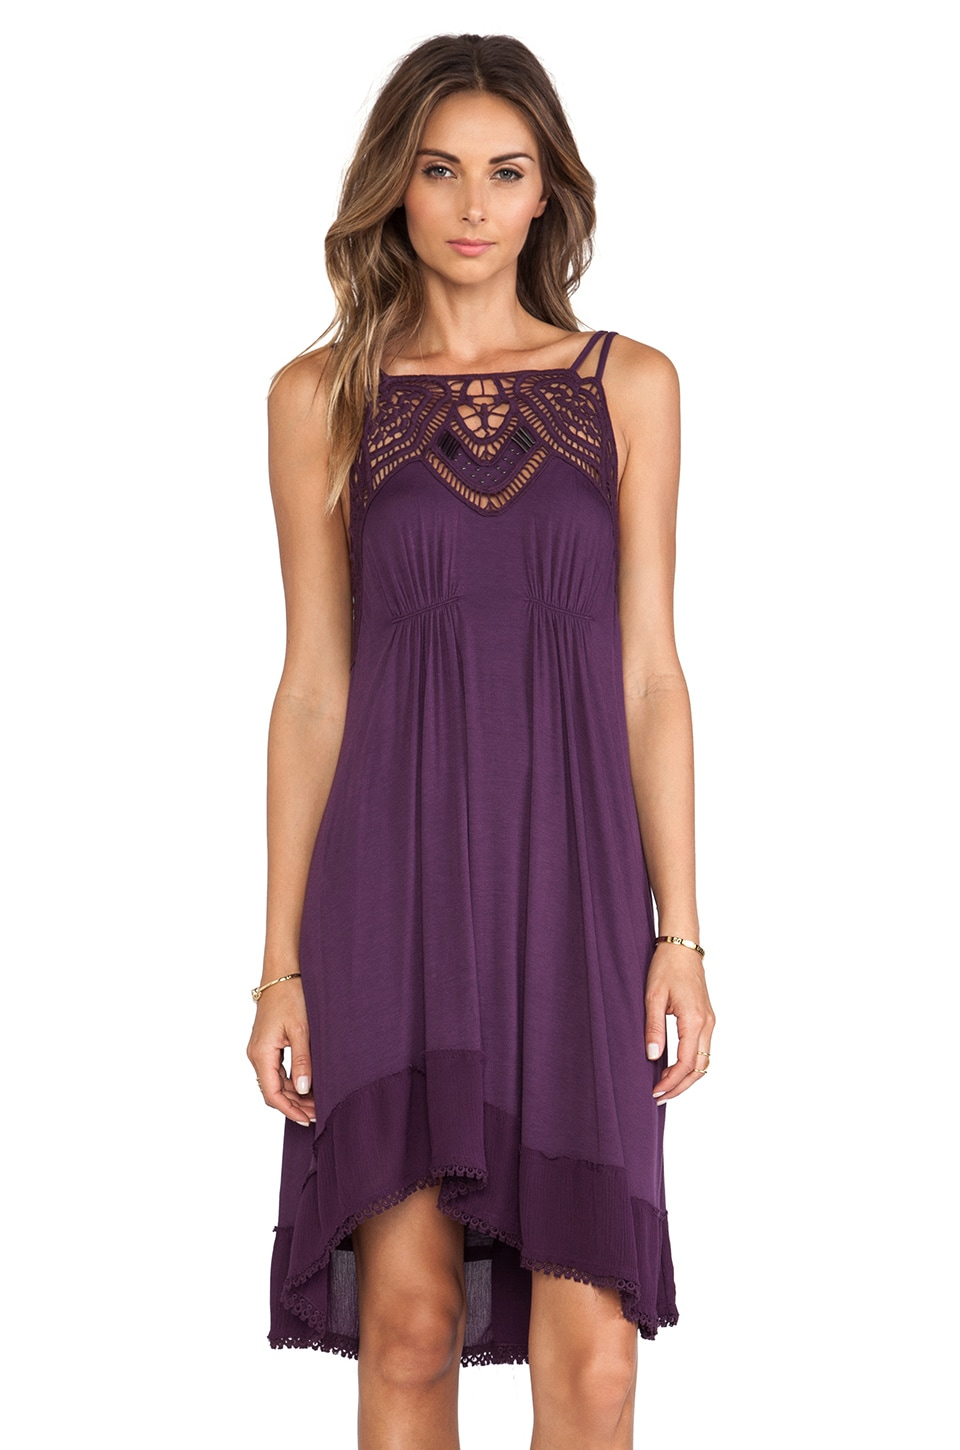 Free People Star Lace Dress in Rich Purple